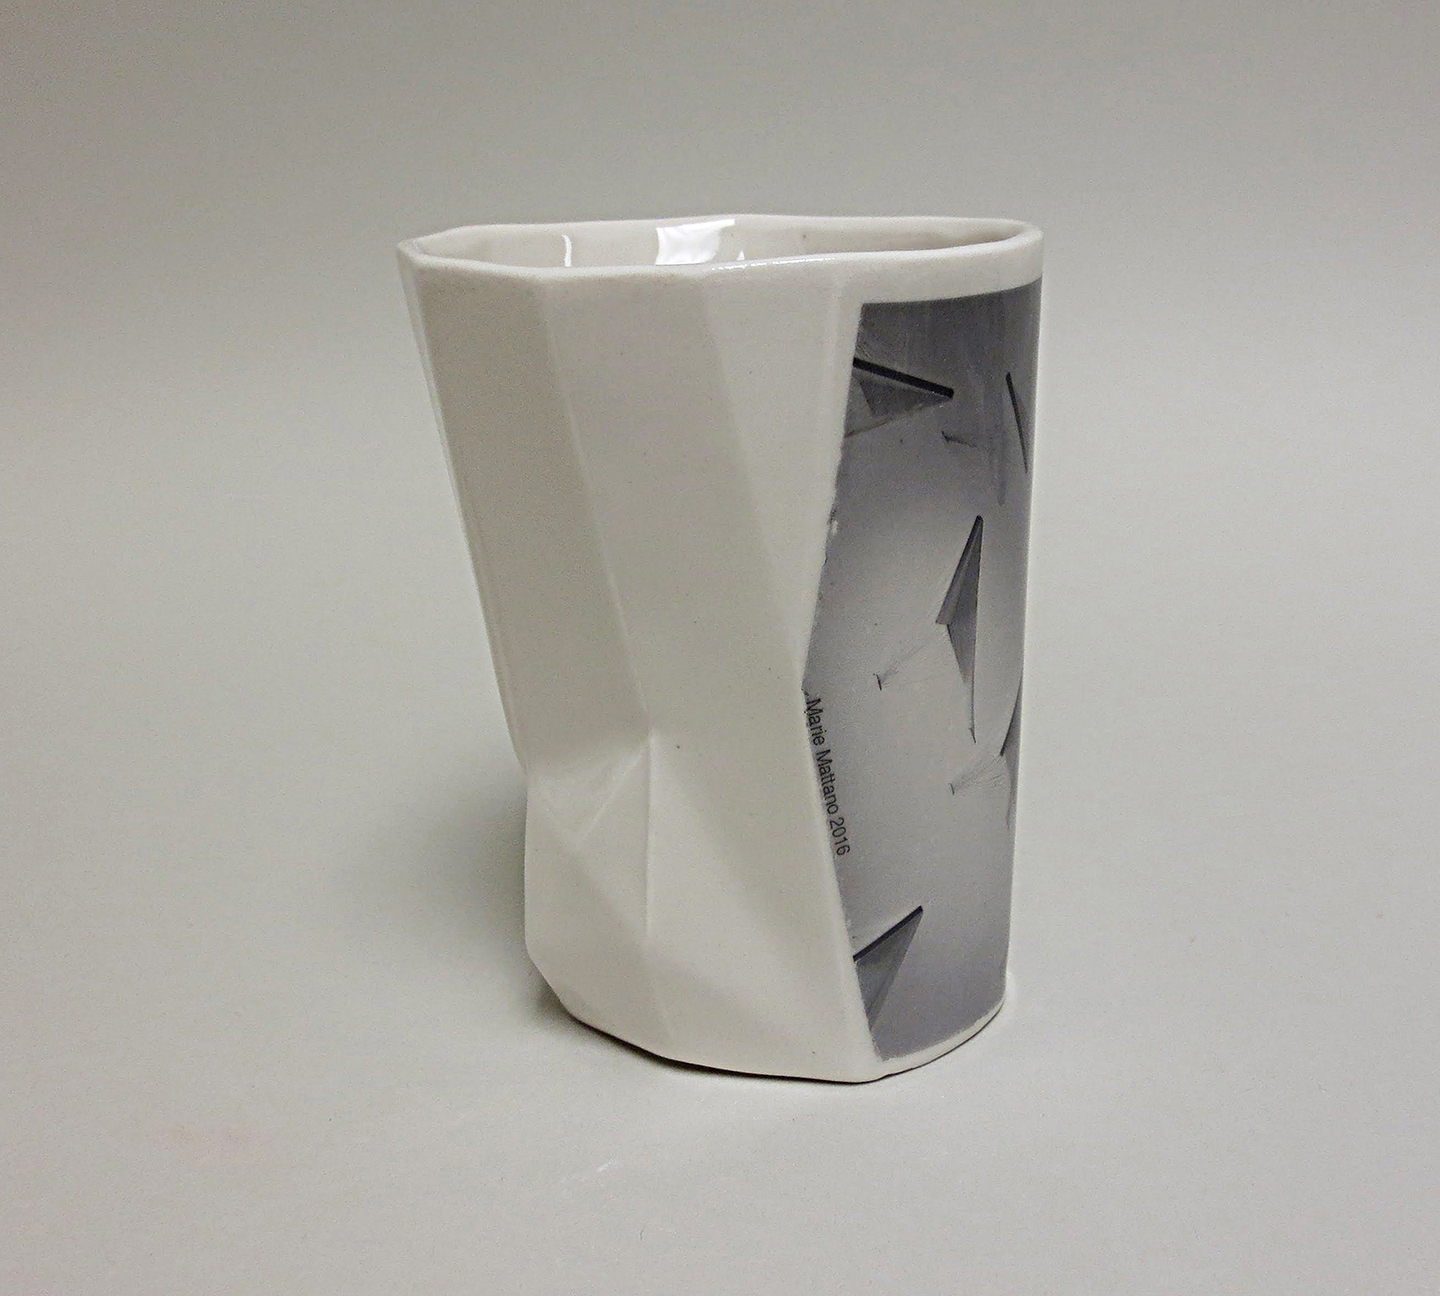 Collabo Cup 1st generation: Marie (left view)